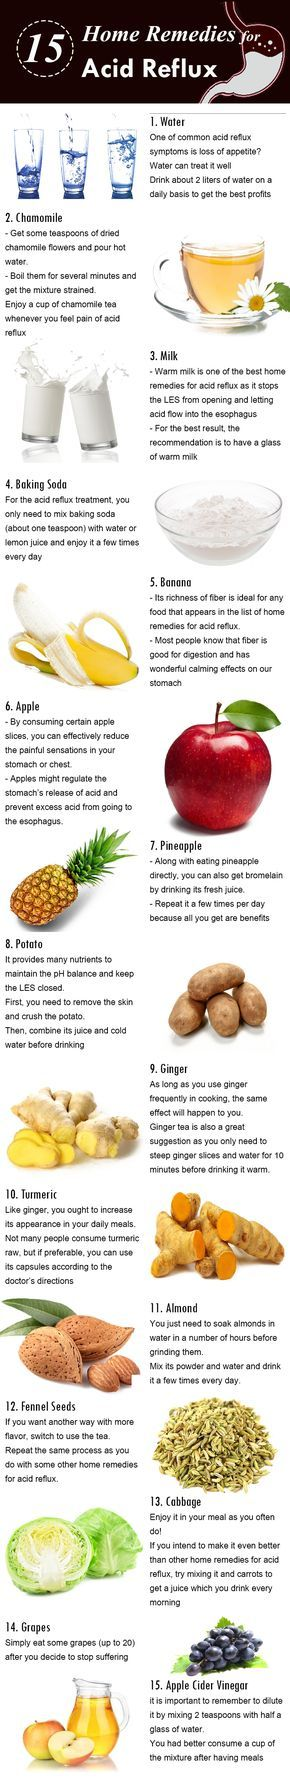 Home Remedies for Acid Reflux: how to get rid of acid reflux